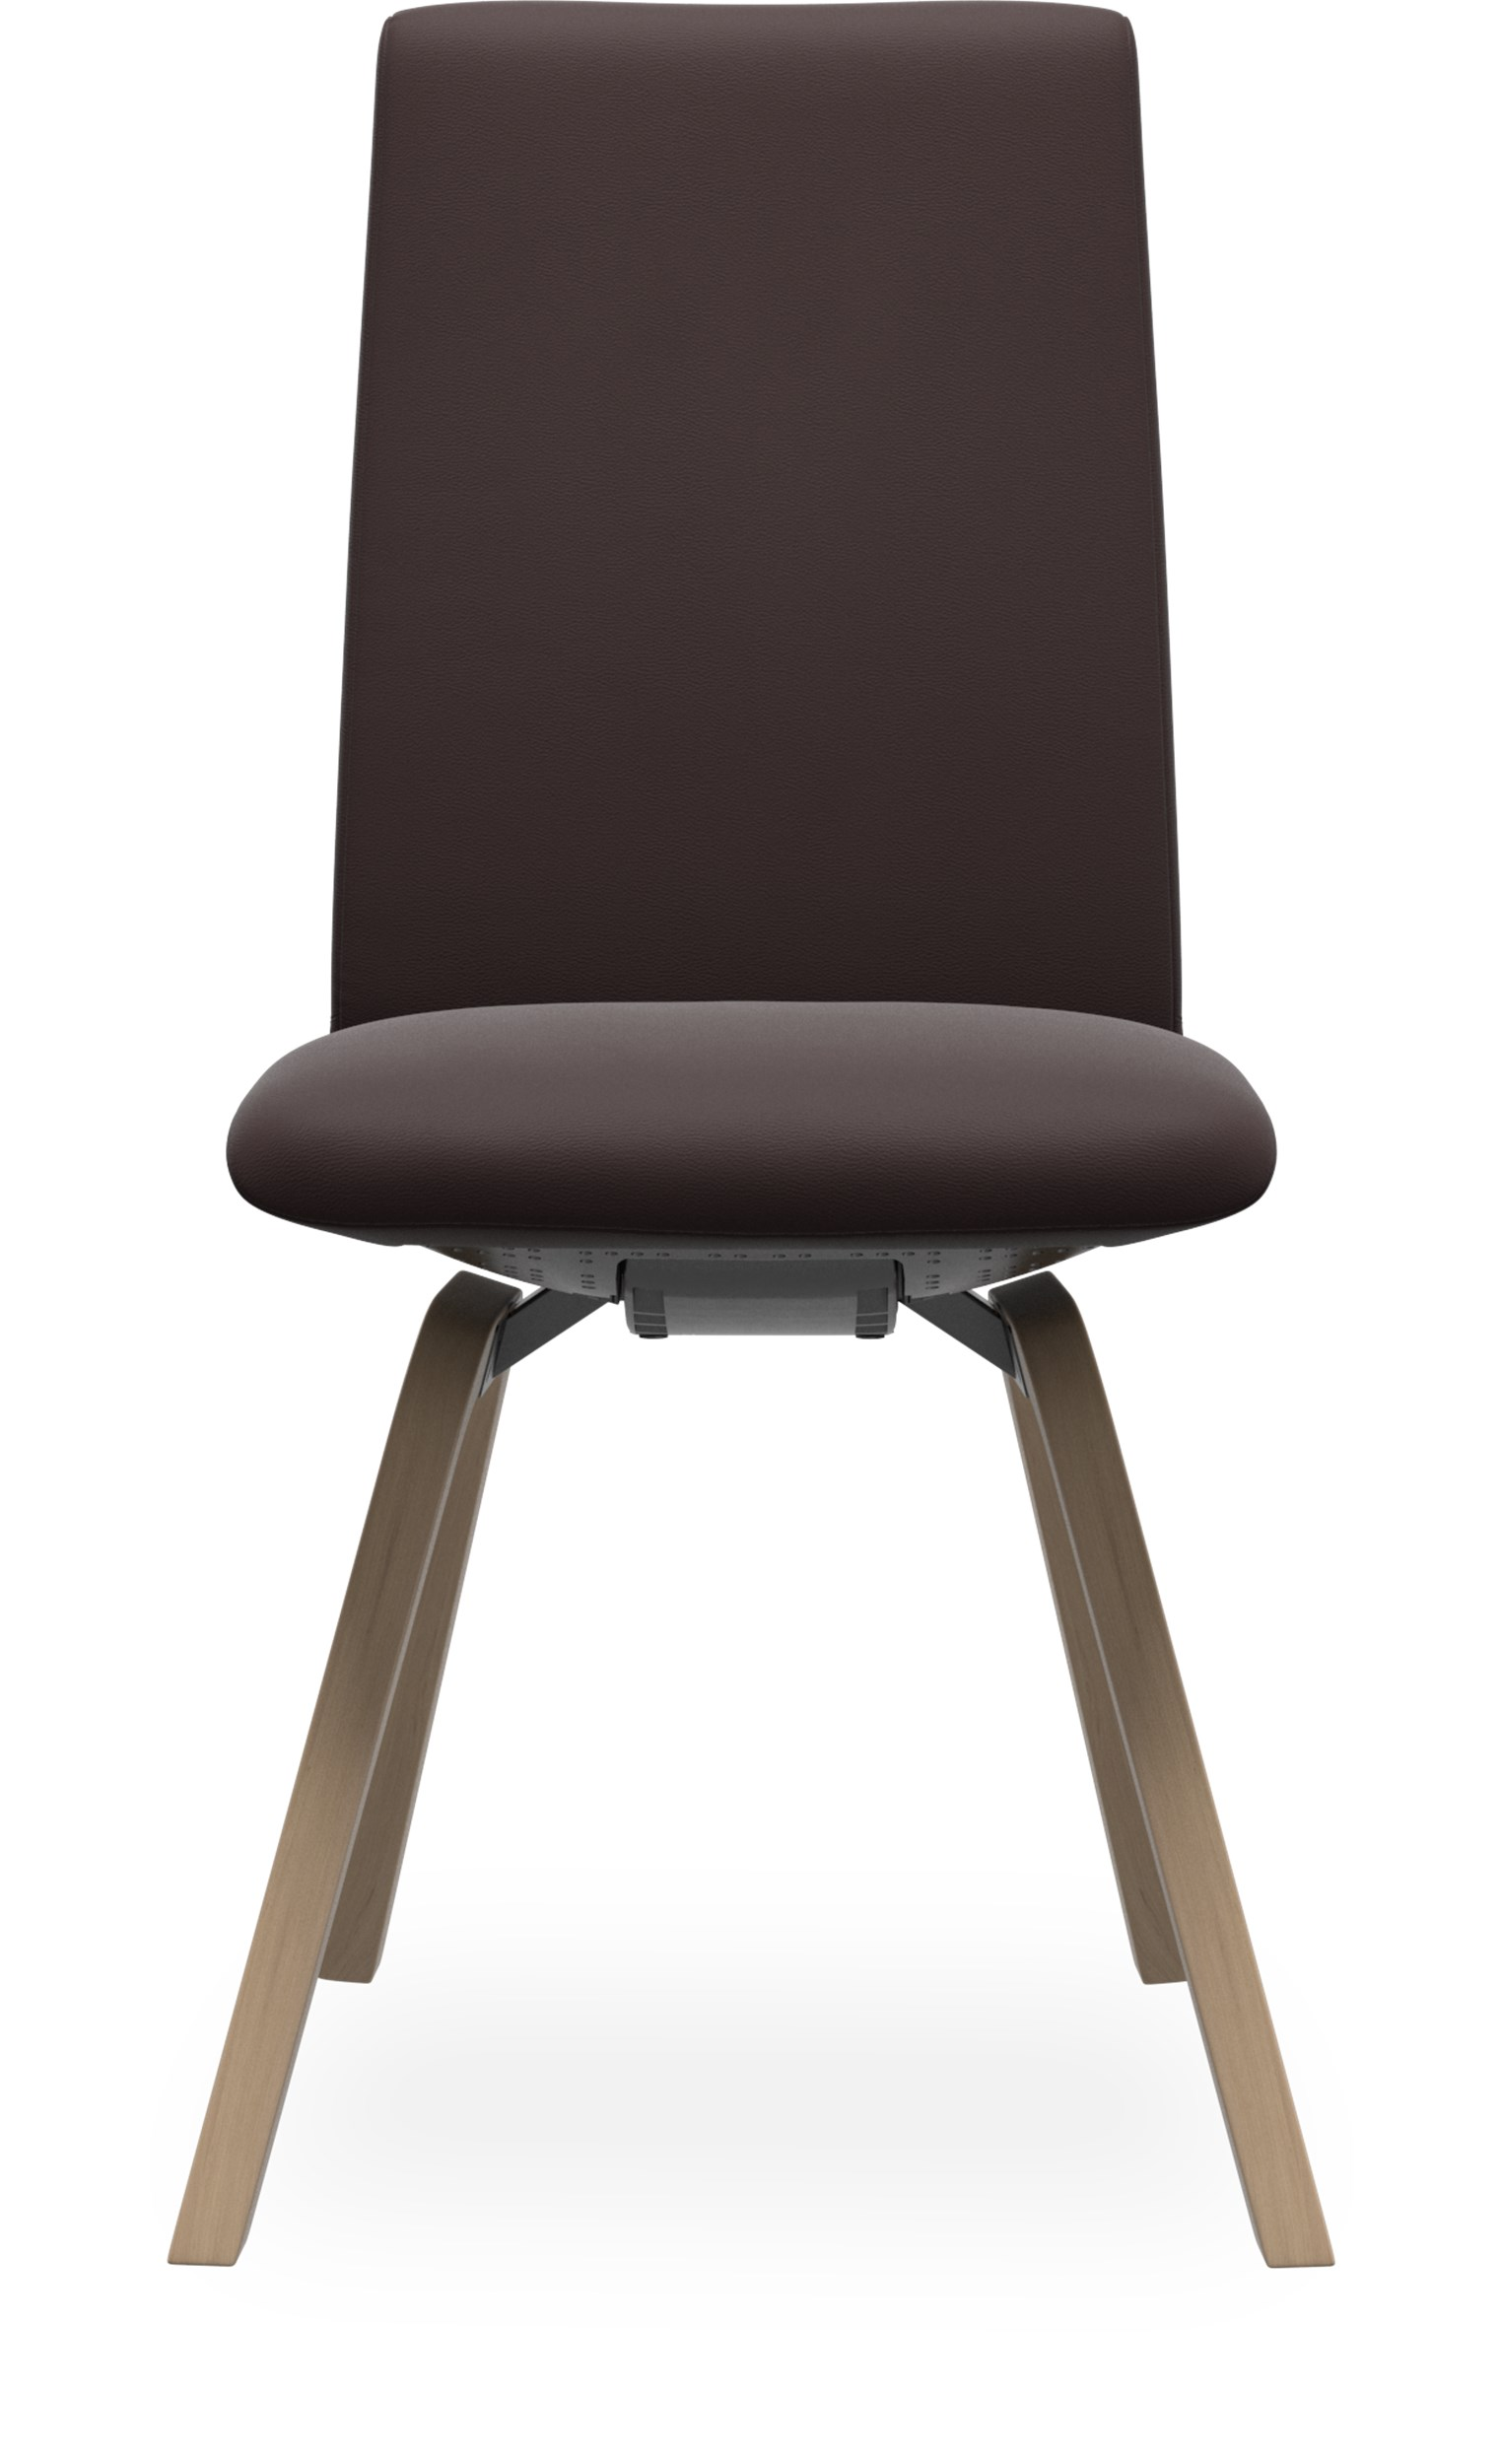 Stressless M D200 Laurel low matstol - Paloma 9434 chocolate läder och stomme i lackerat ekfaner